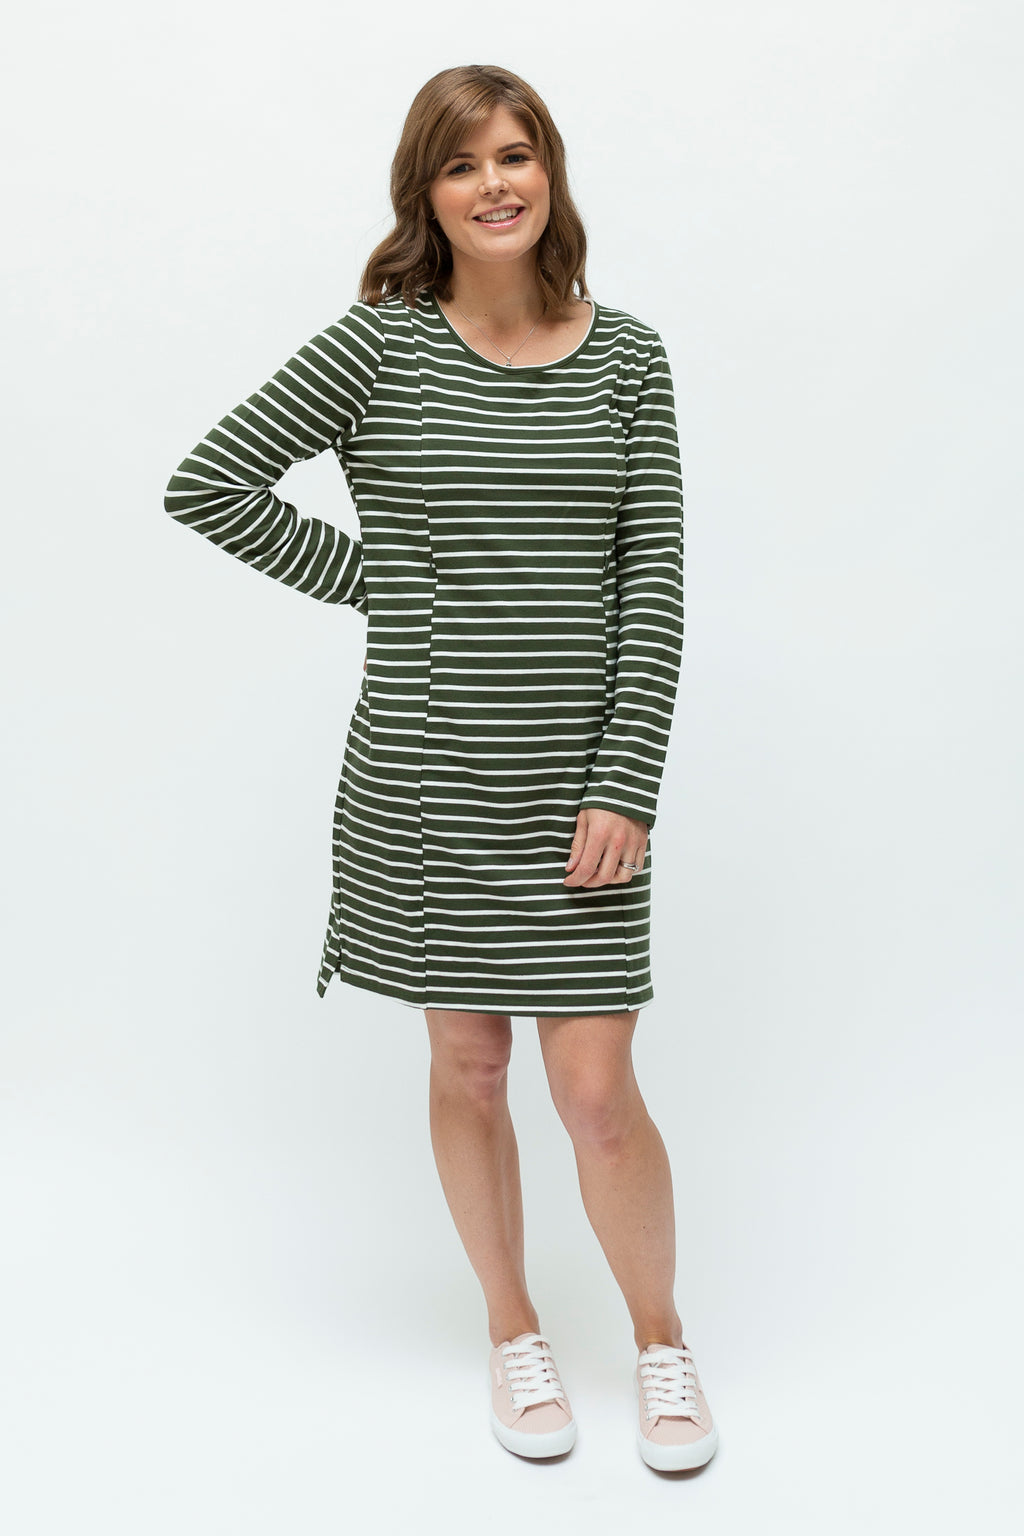 olive & white breastfeeding dress nz - front